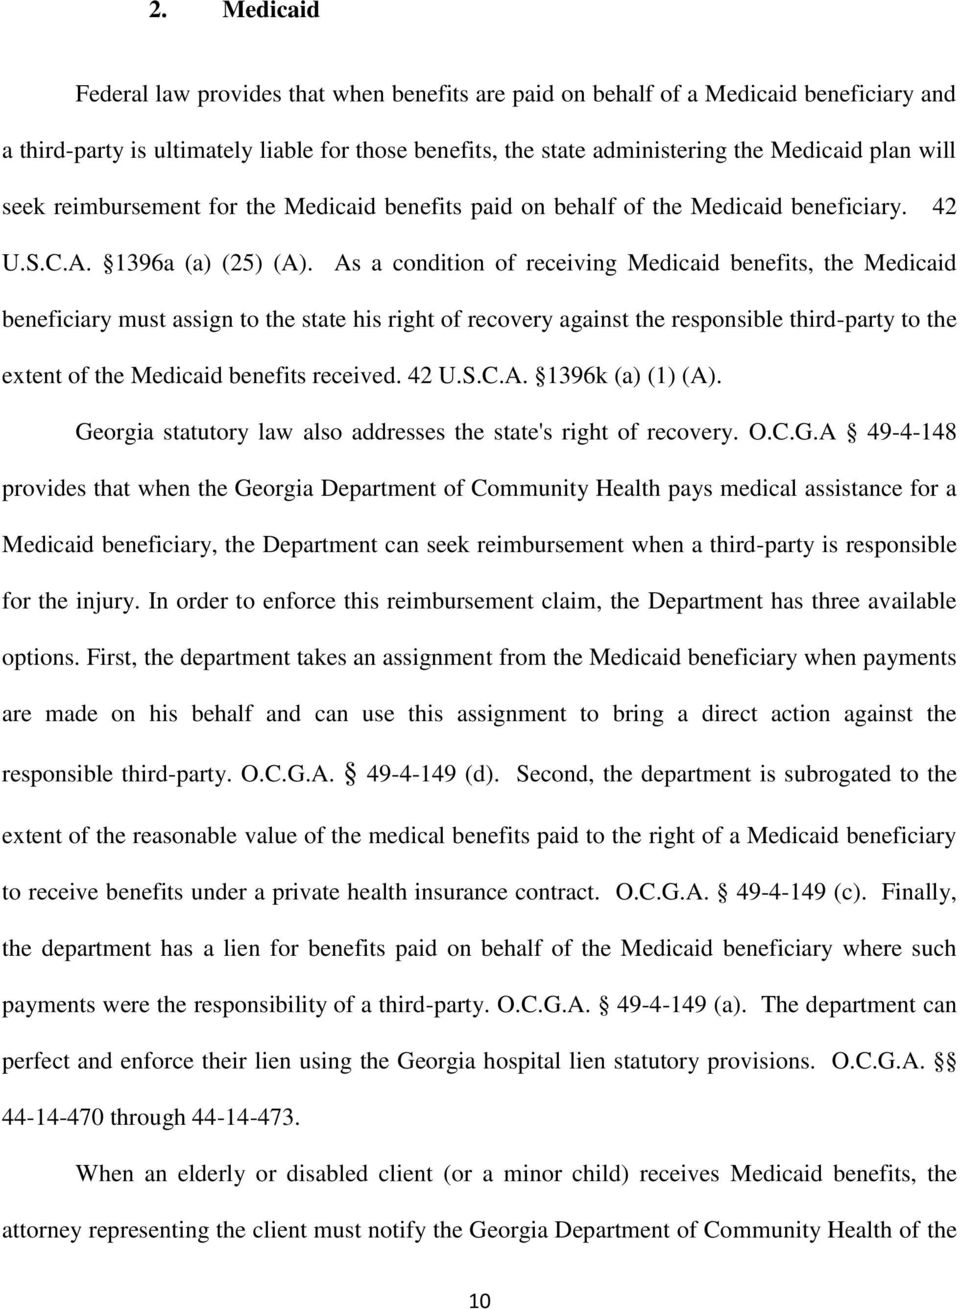 As a condition of receiving Medicaid benefits, the Medicaid beneficiary must assign to the state his right of recovery against the responsible third-party to the extent of the Medicaid benefits